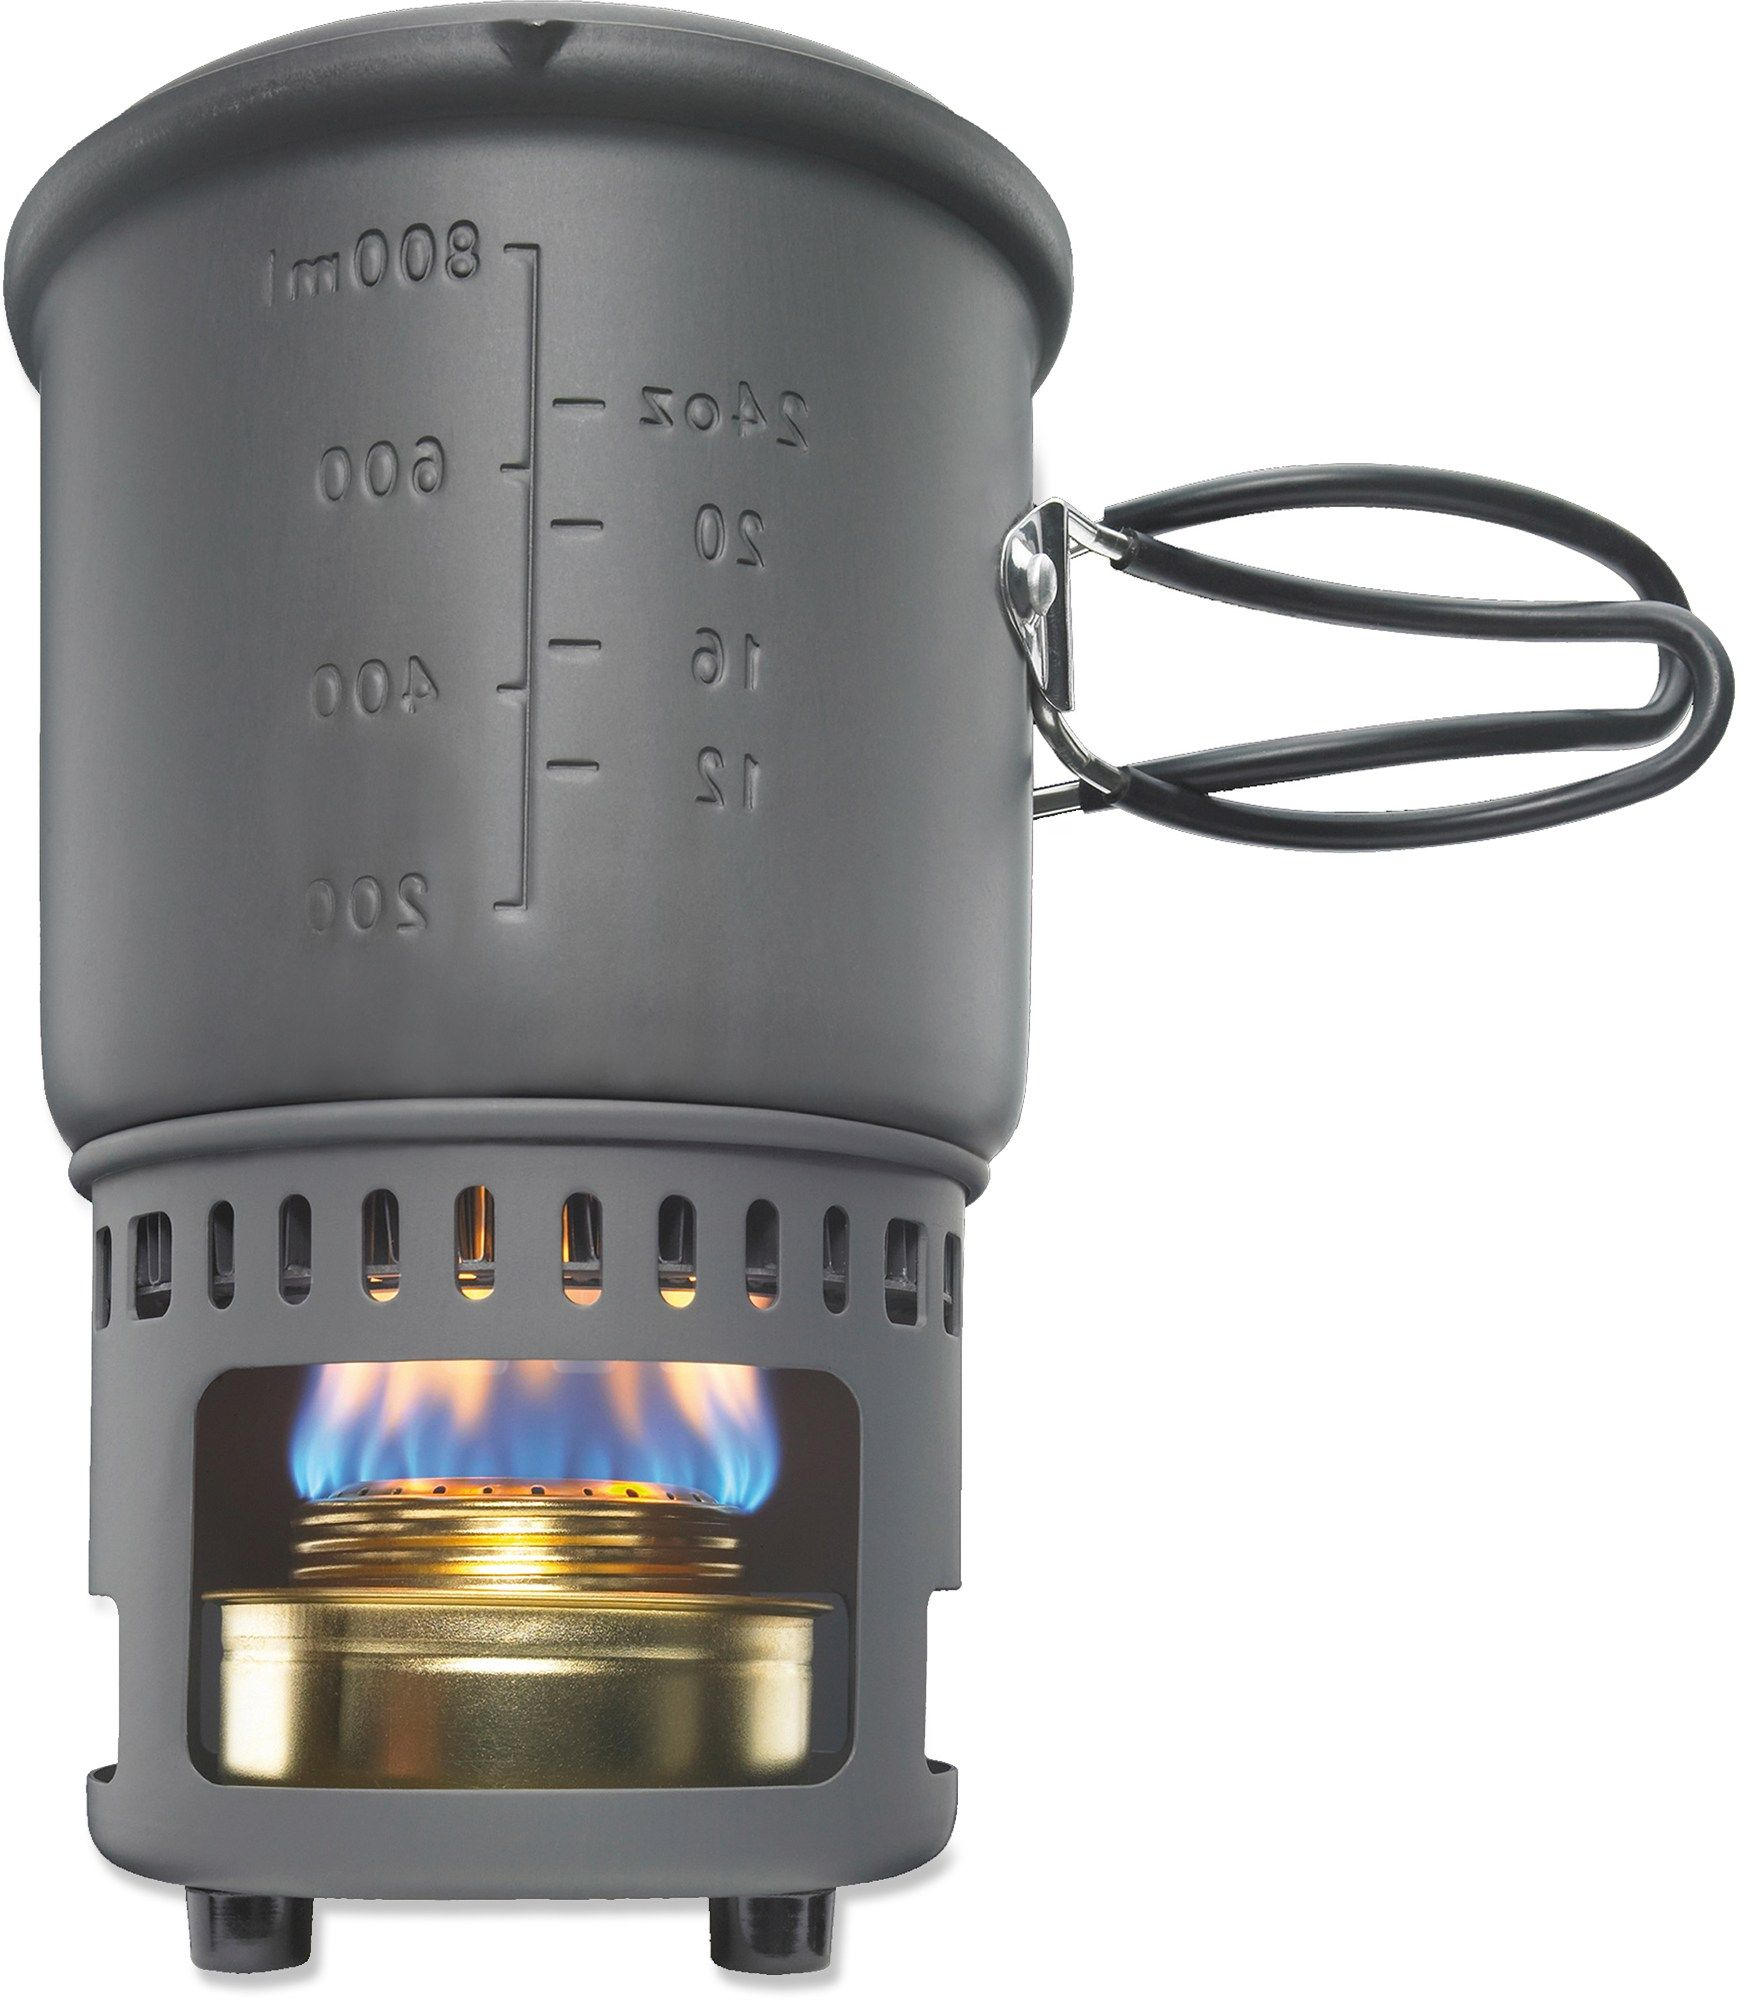 Esbit CS985H-EX Alcohol Stove Cookset - 2014 Overstock